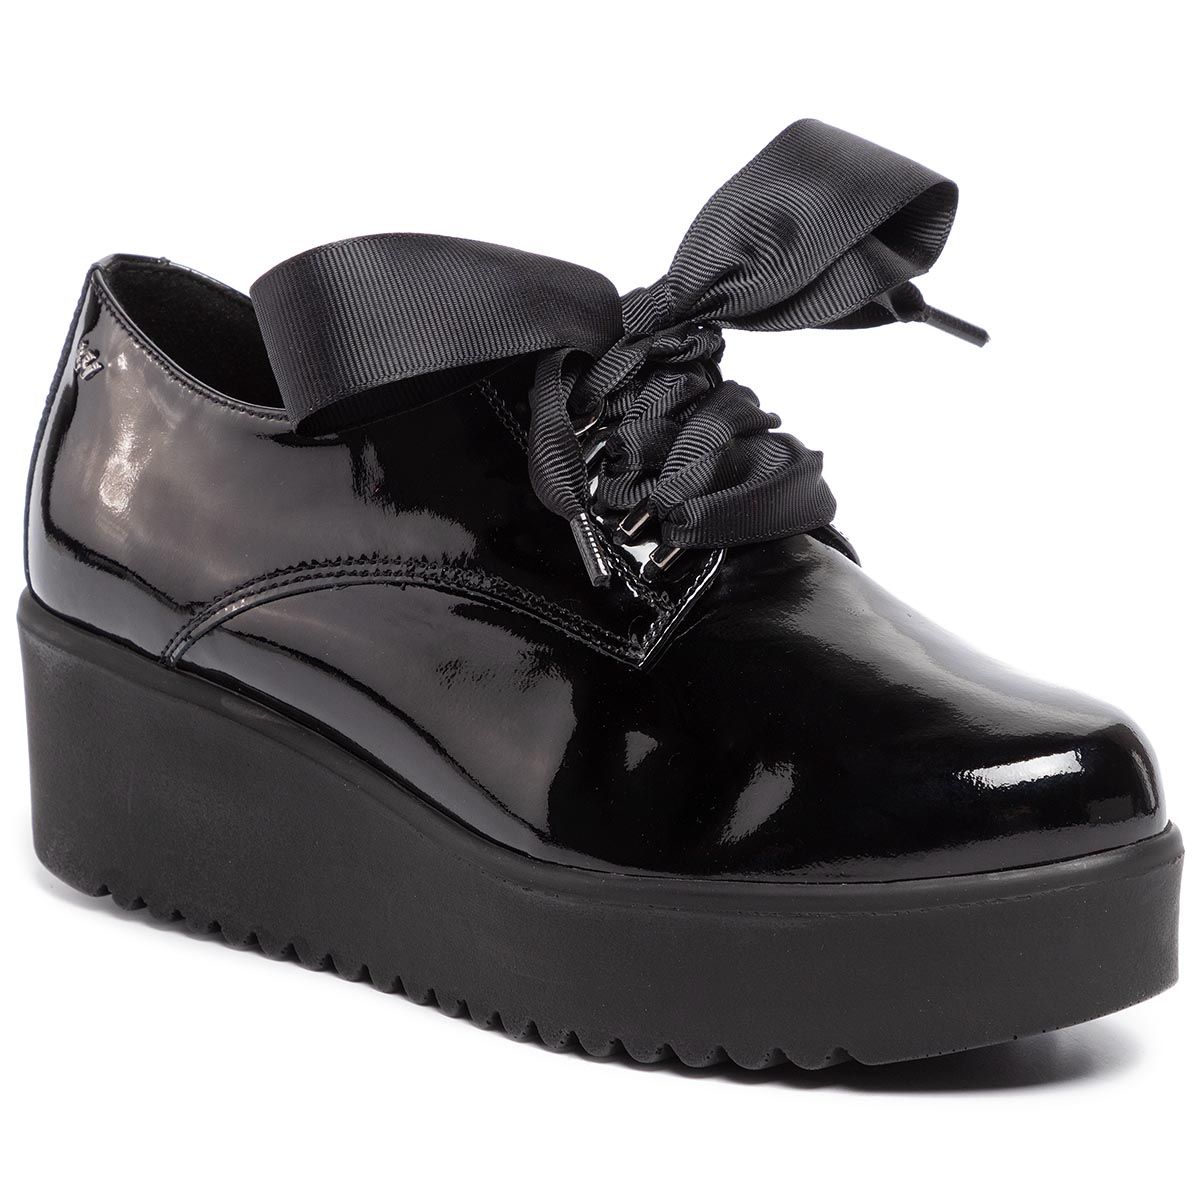 Oxford Wojas - 9491-31 Negru imagine epantofi.ro 2021